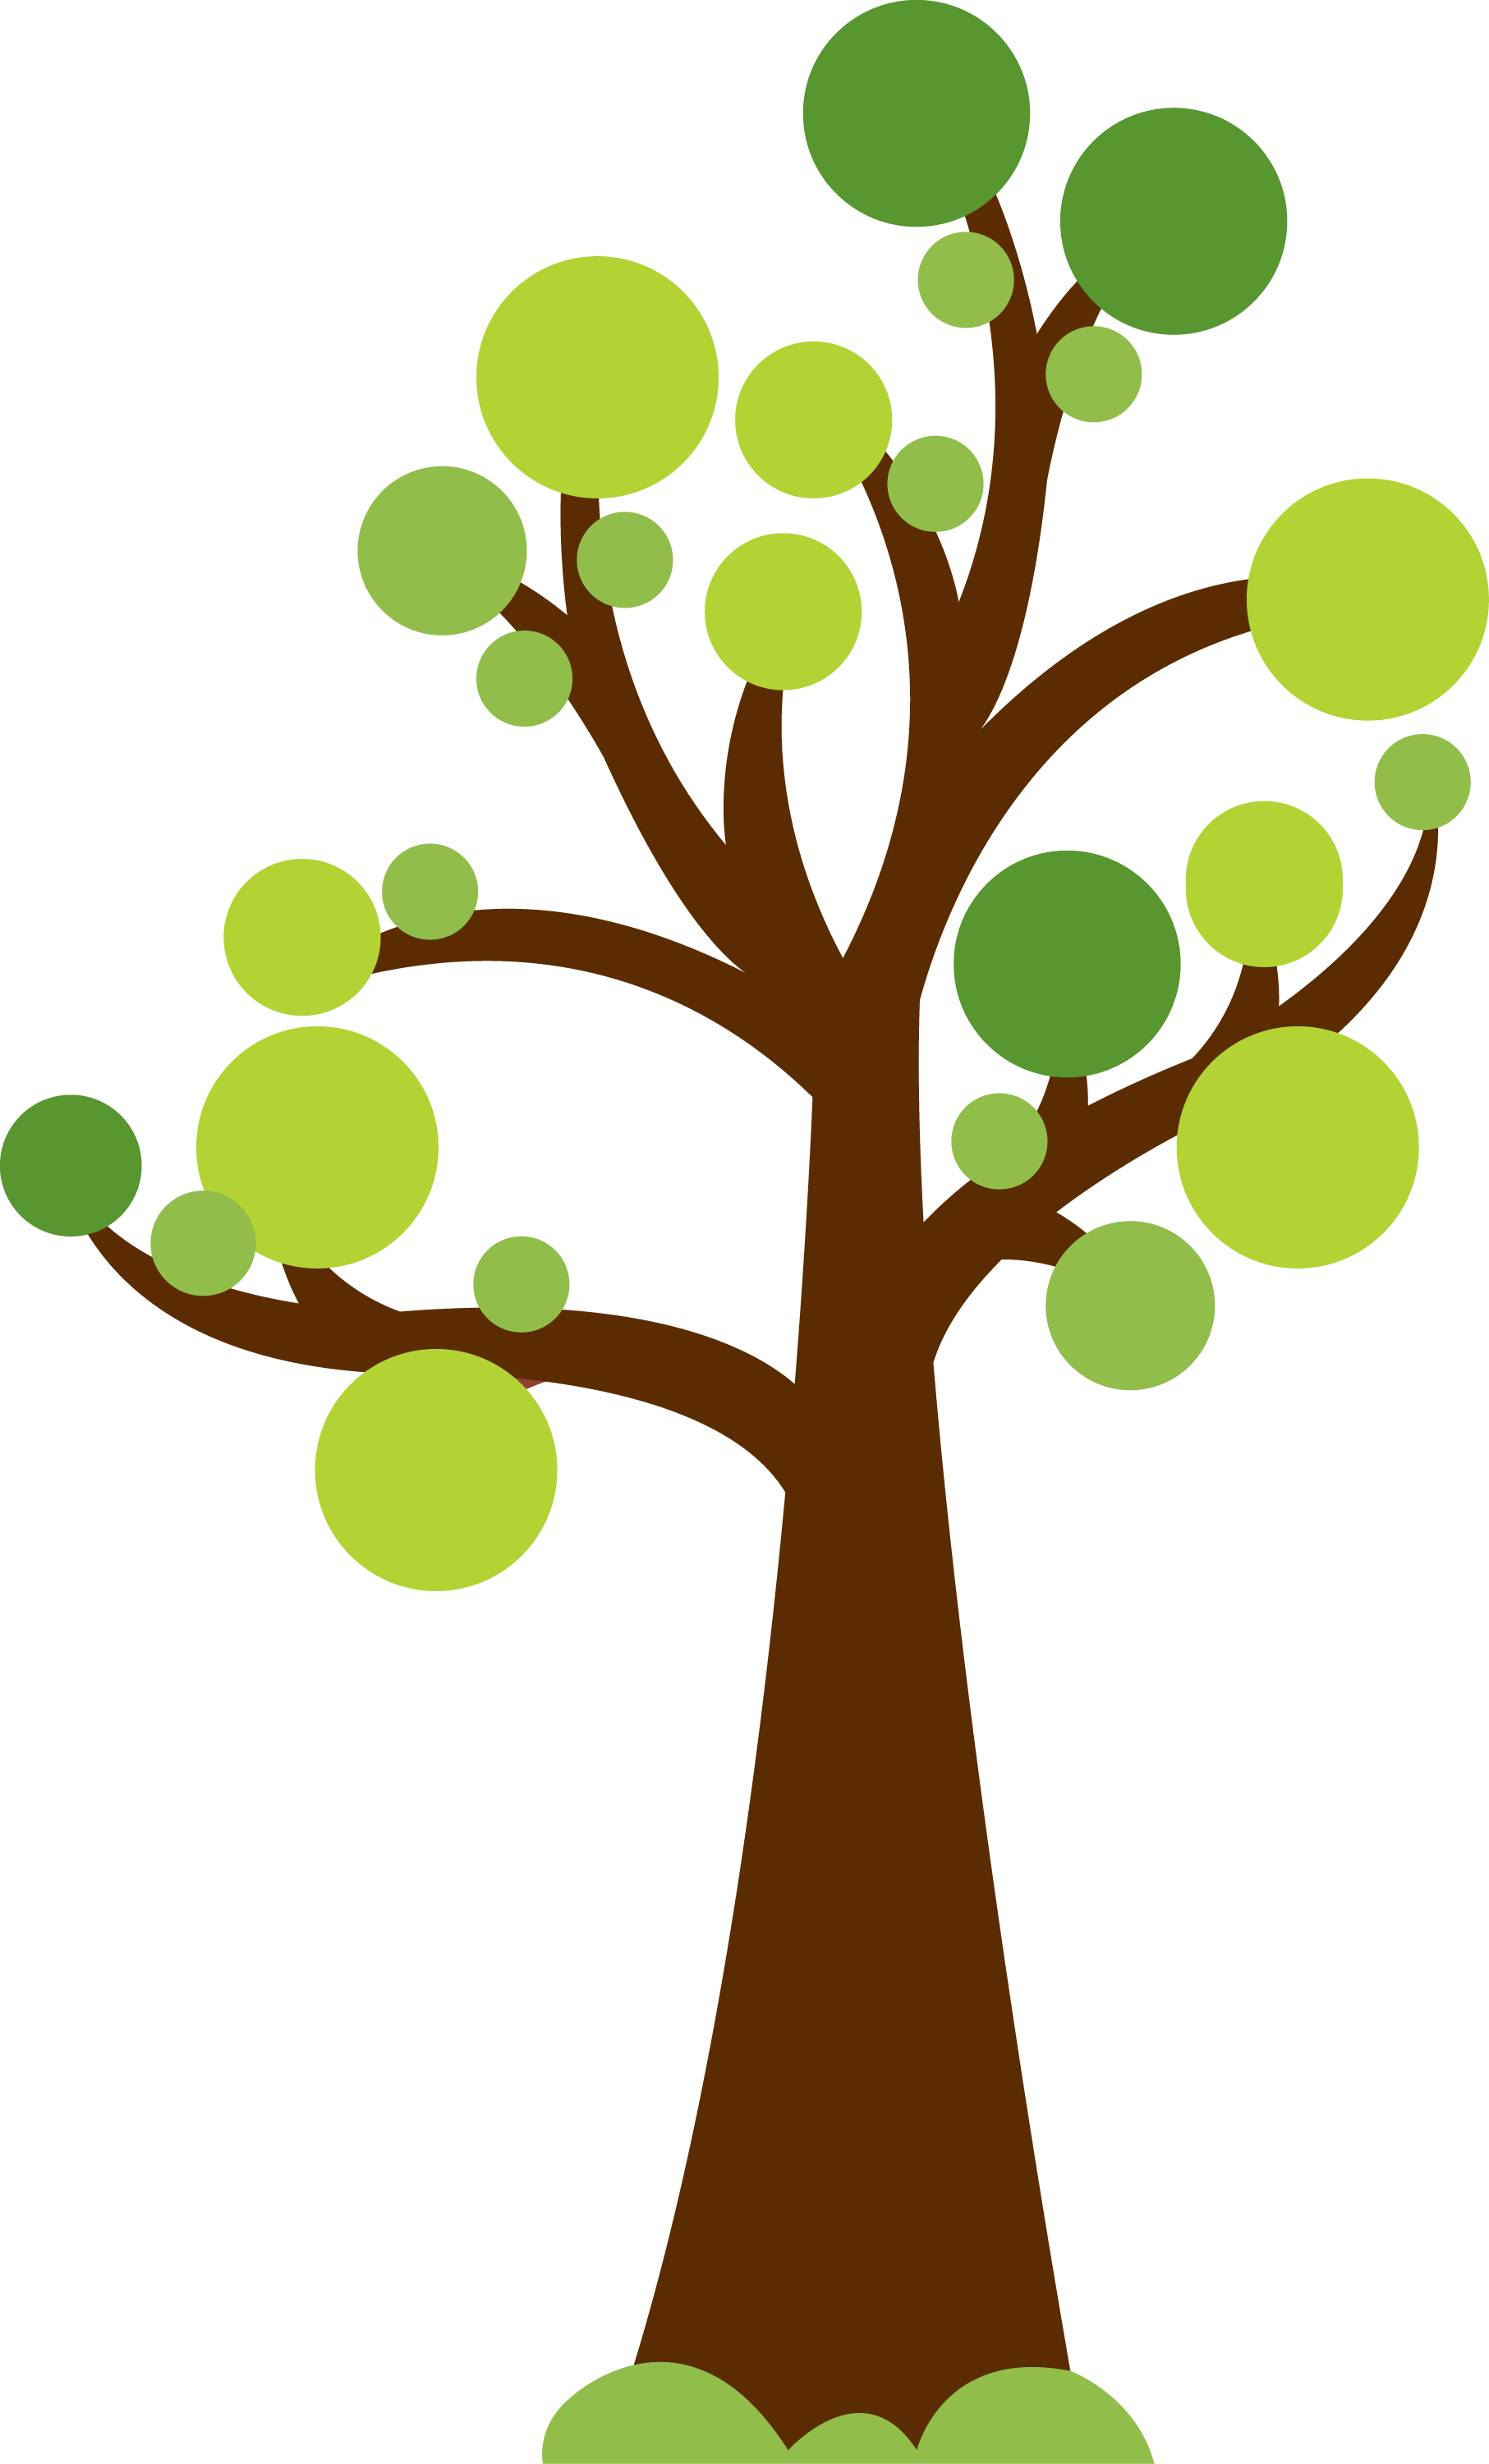 tree with circles for